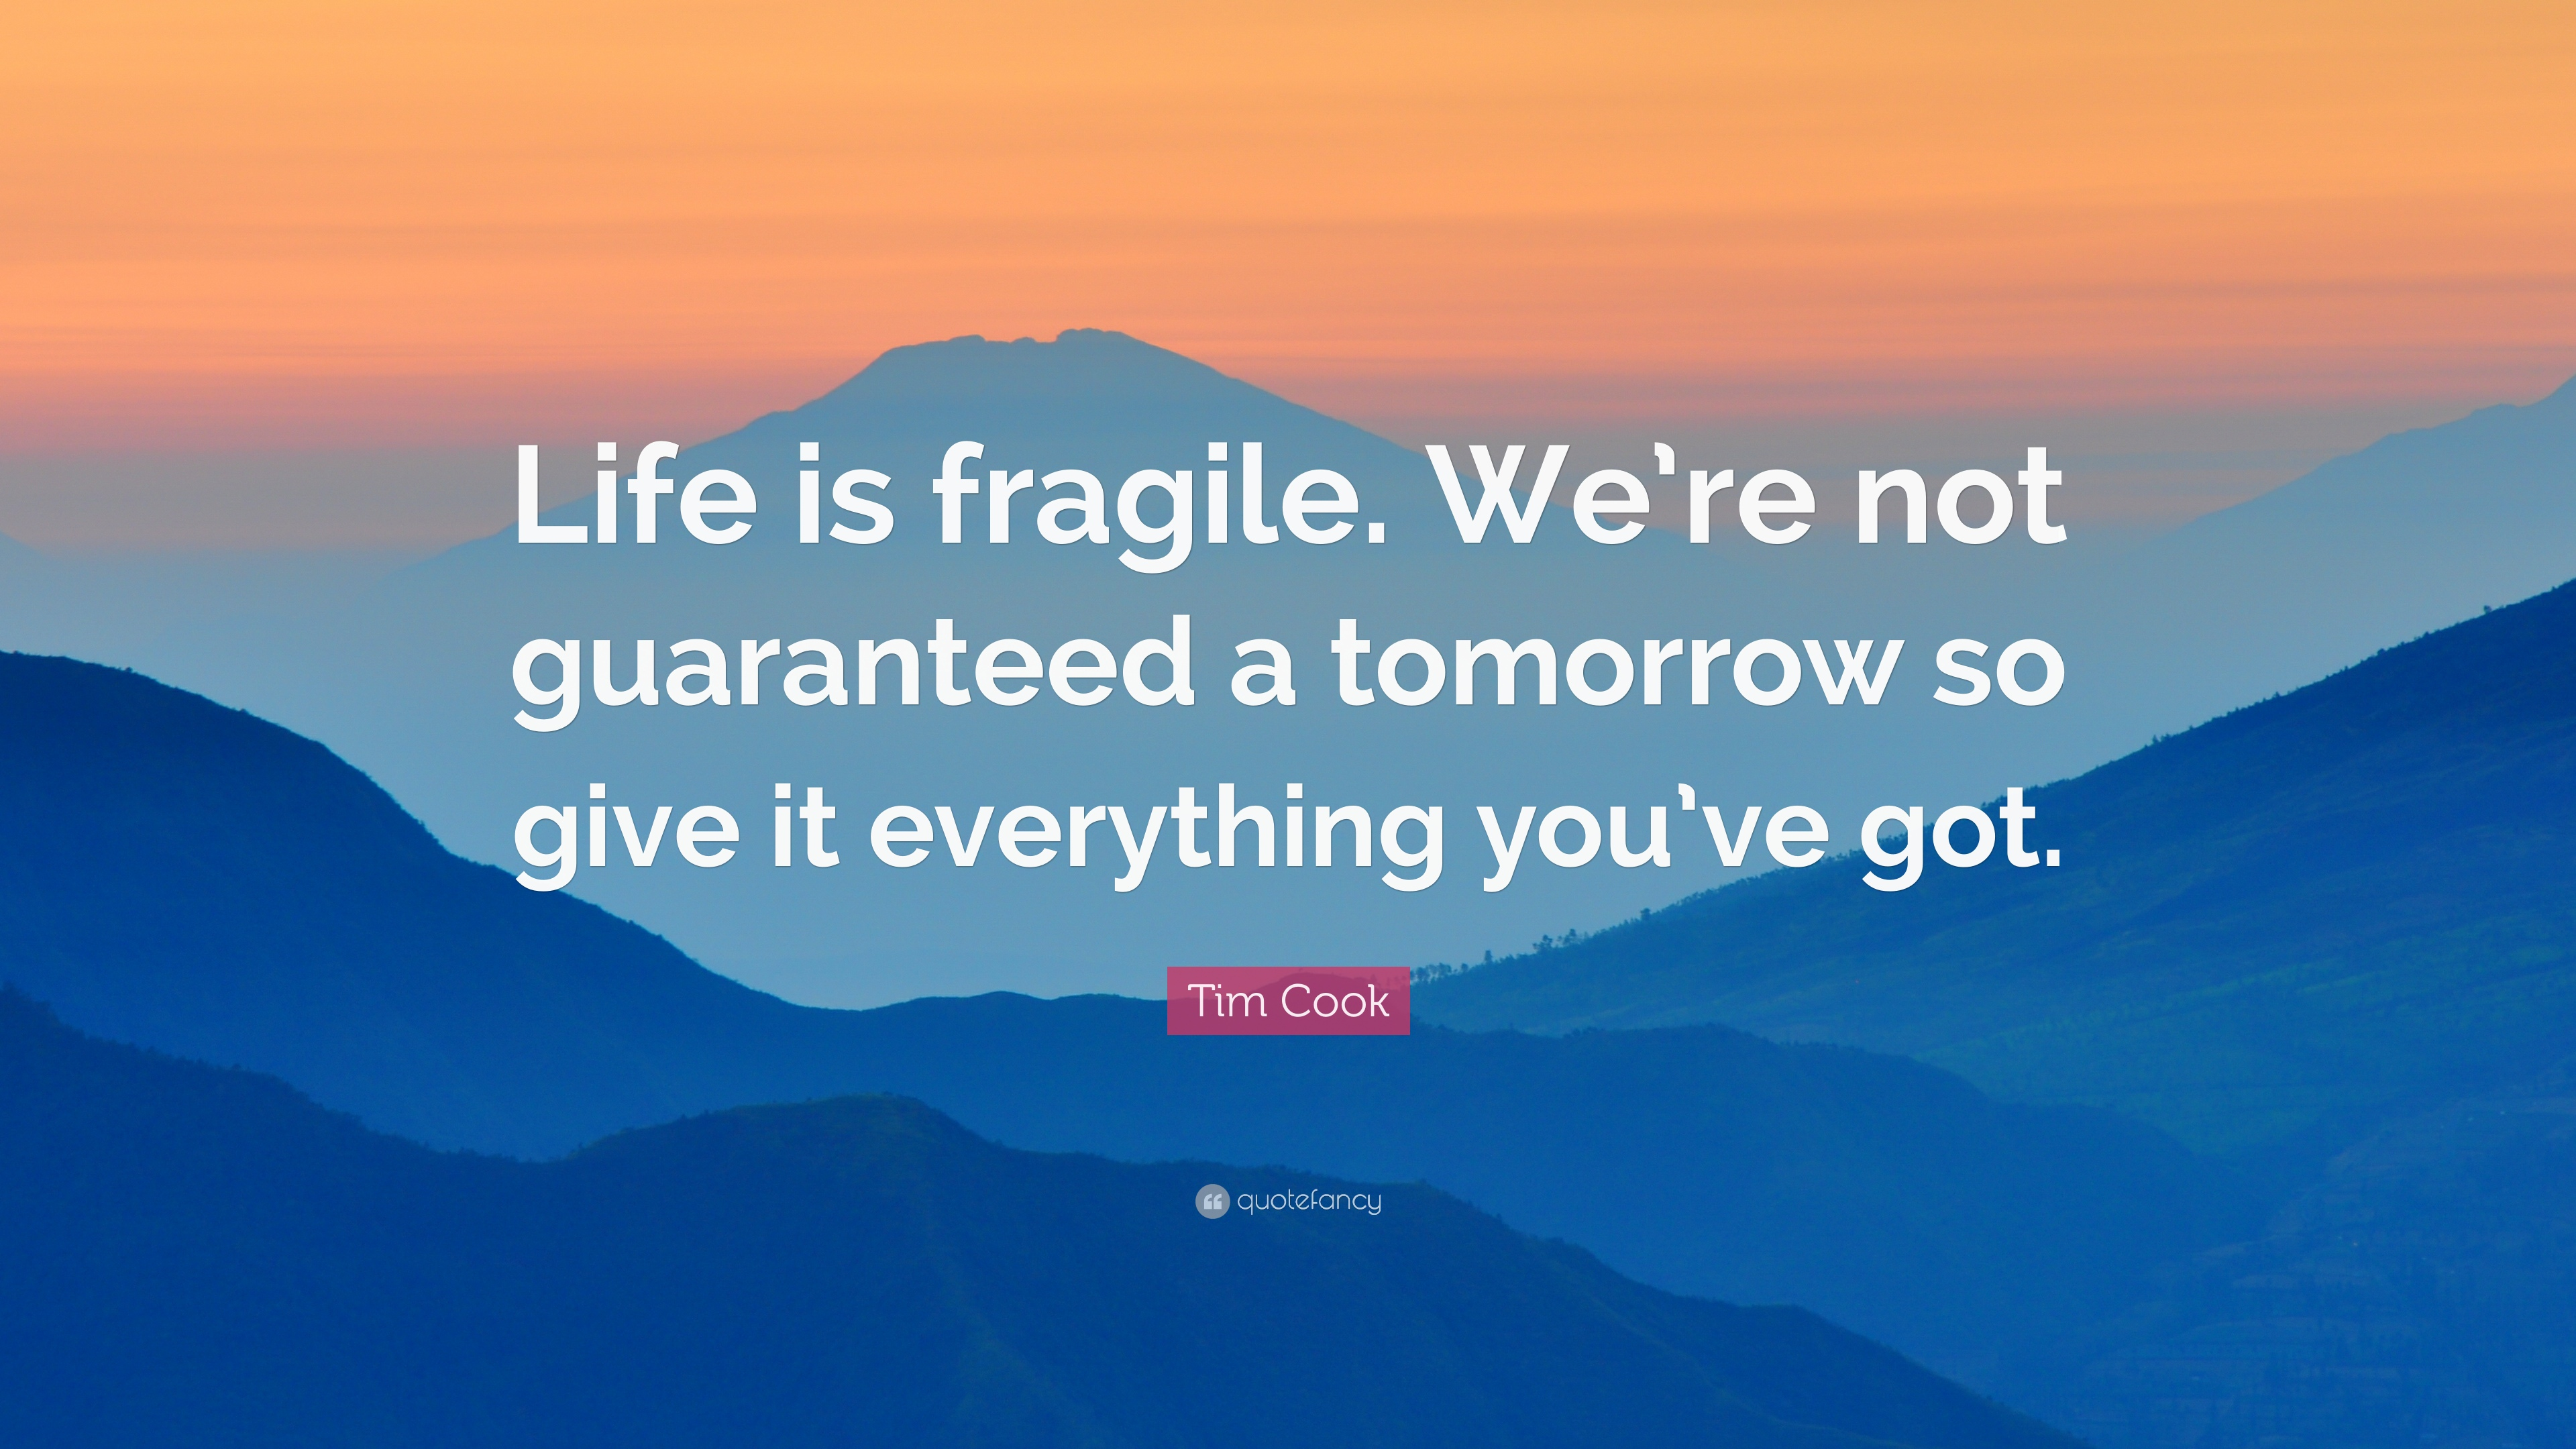 tim cook quote life is fragile we re not guaranteed a tomorrow so